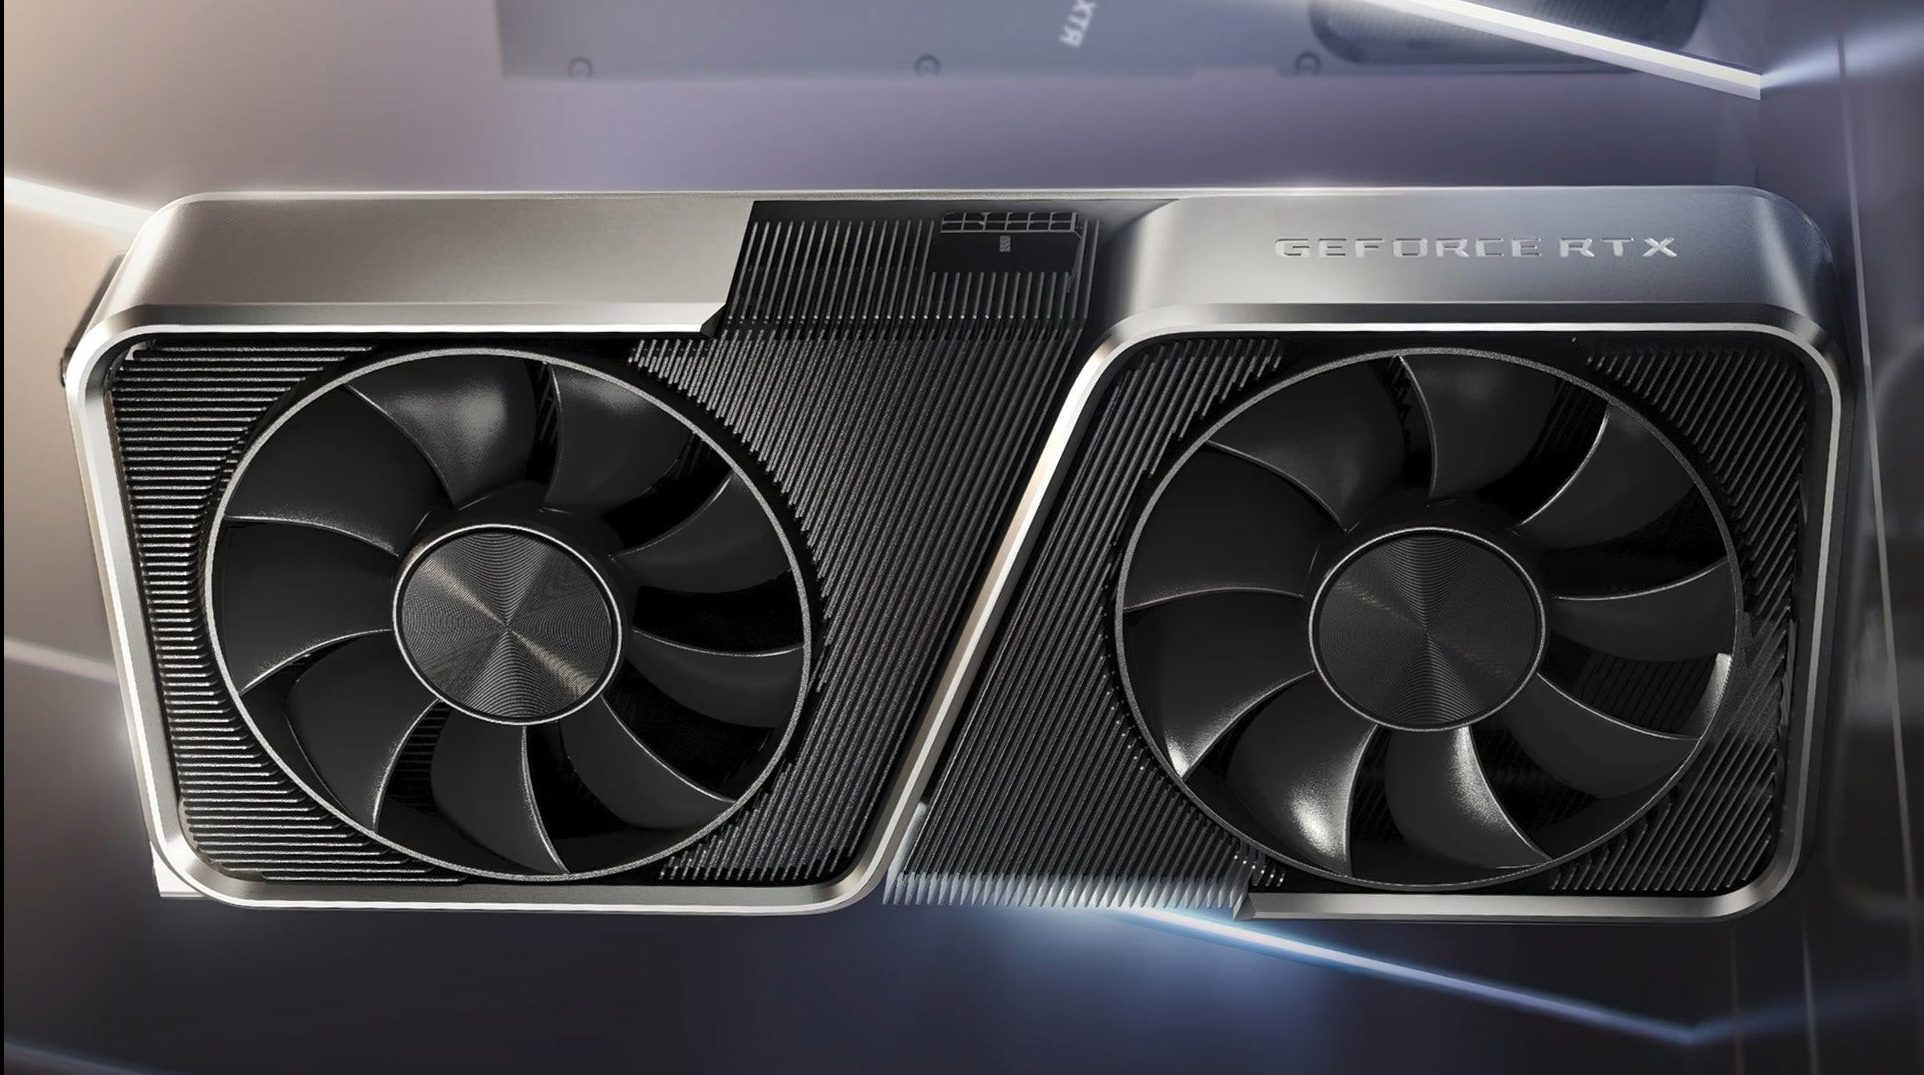 Good news from RTX 3070 sales: the players win